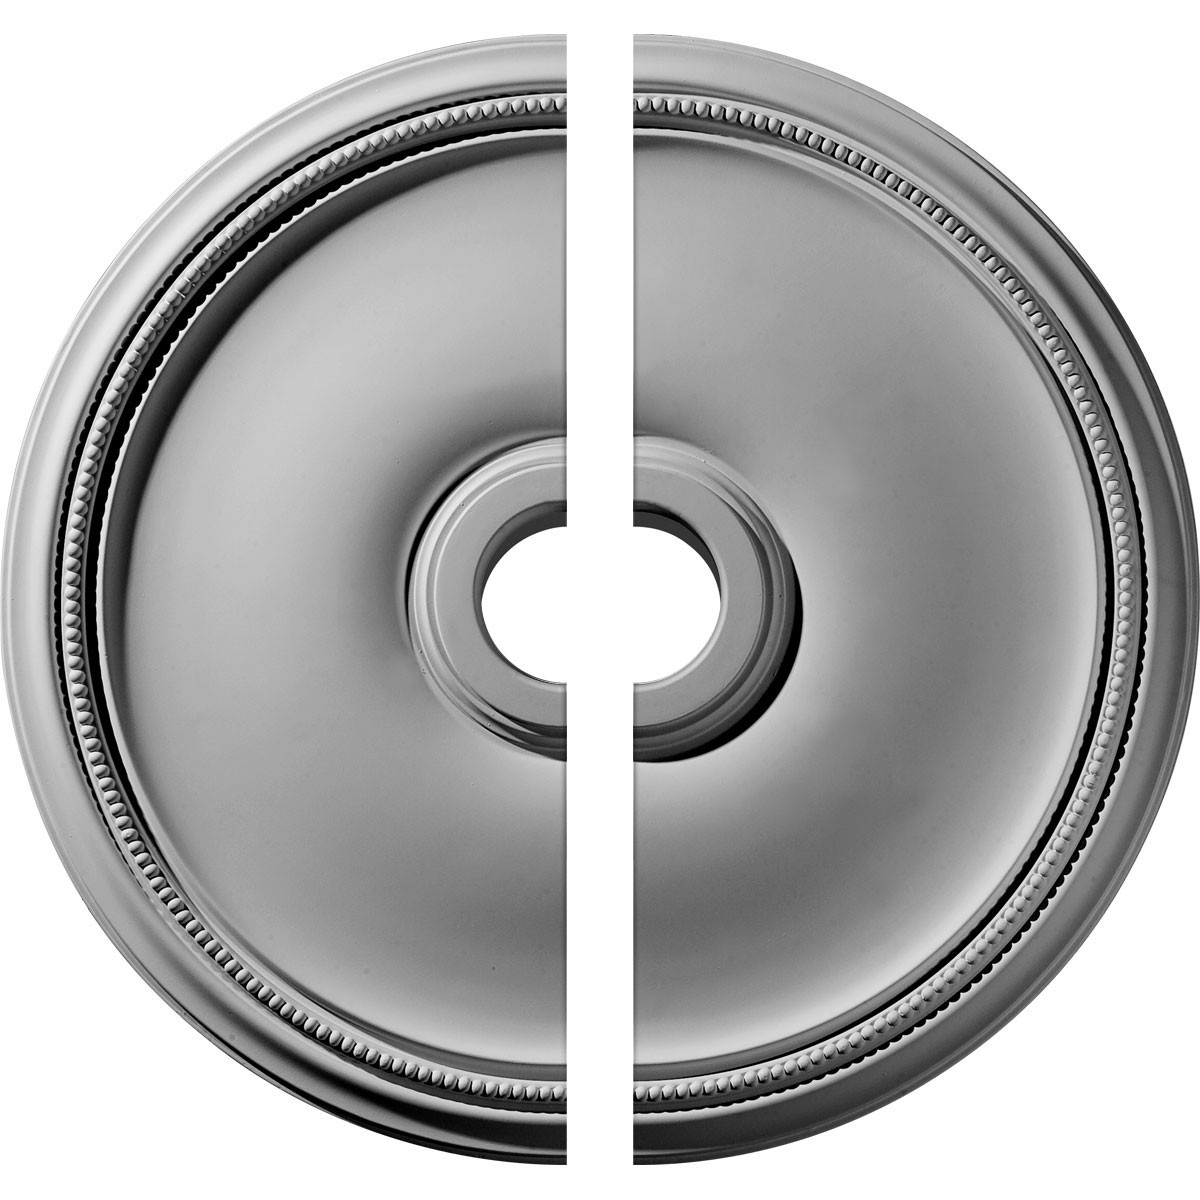 """EM-CM24TH2 - 24""""OD x 3 5/8""""ID x 1 3/4""""P Theia Ceiling Medallion, Two Piece (Fits Canopies up to 6 3/4"""")"""